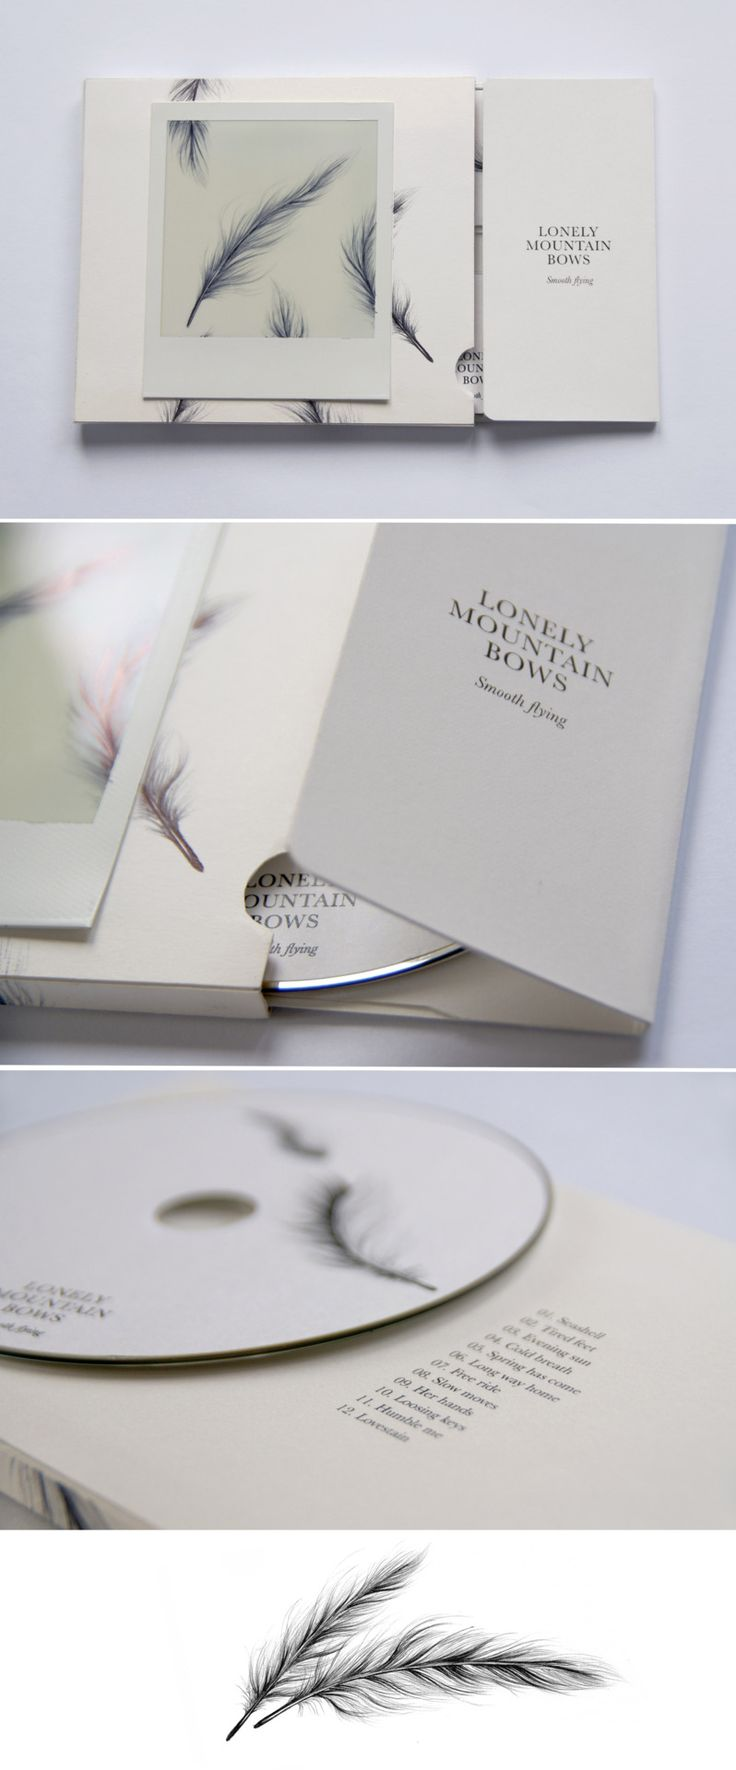 lonely mountain bows ++ carla cascales alimbau. If you want to customize a good-looking CD packaging, visit www.unifiedmanufacturing.com.